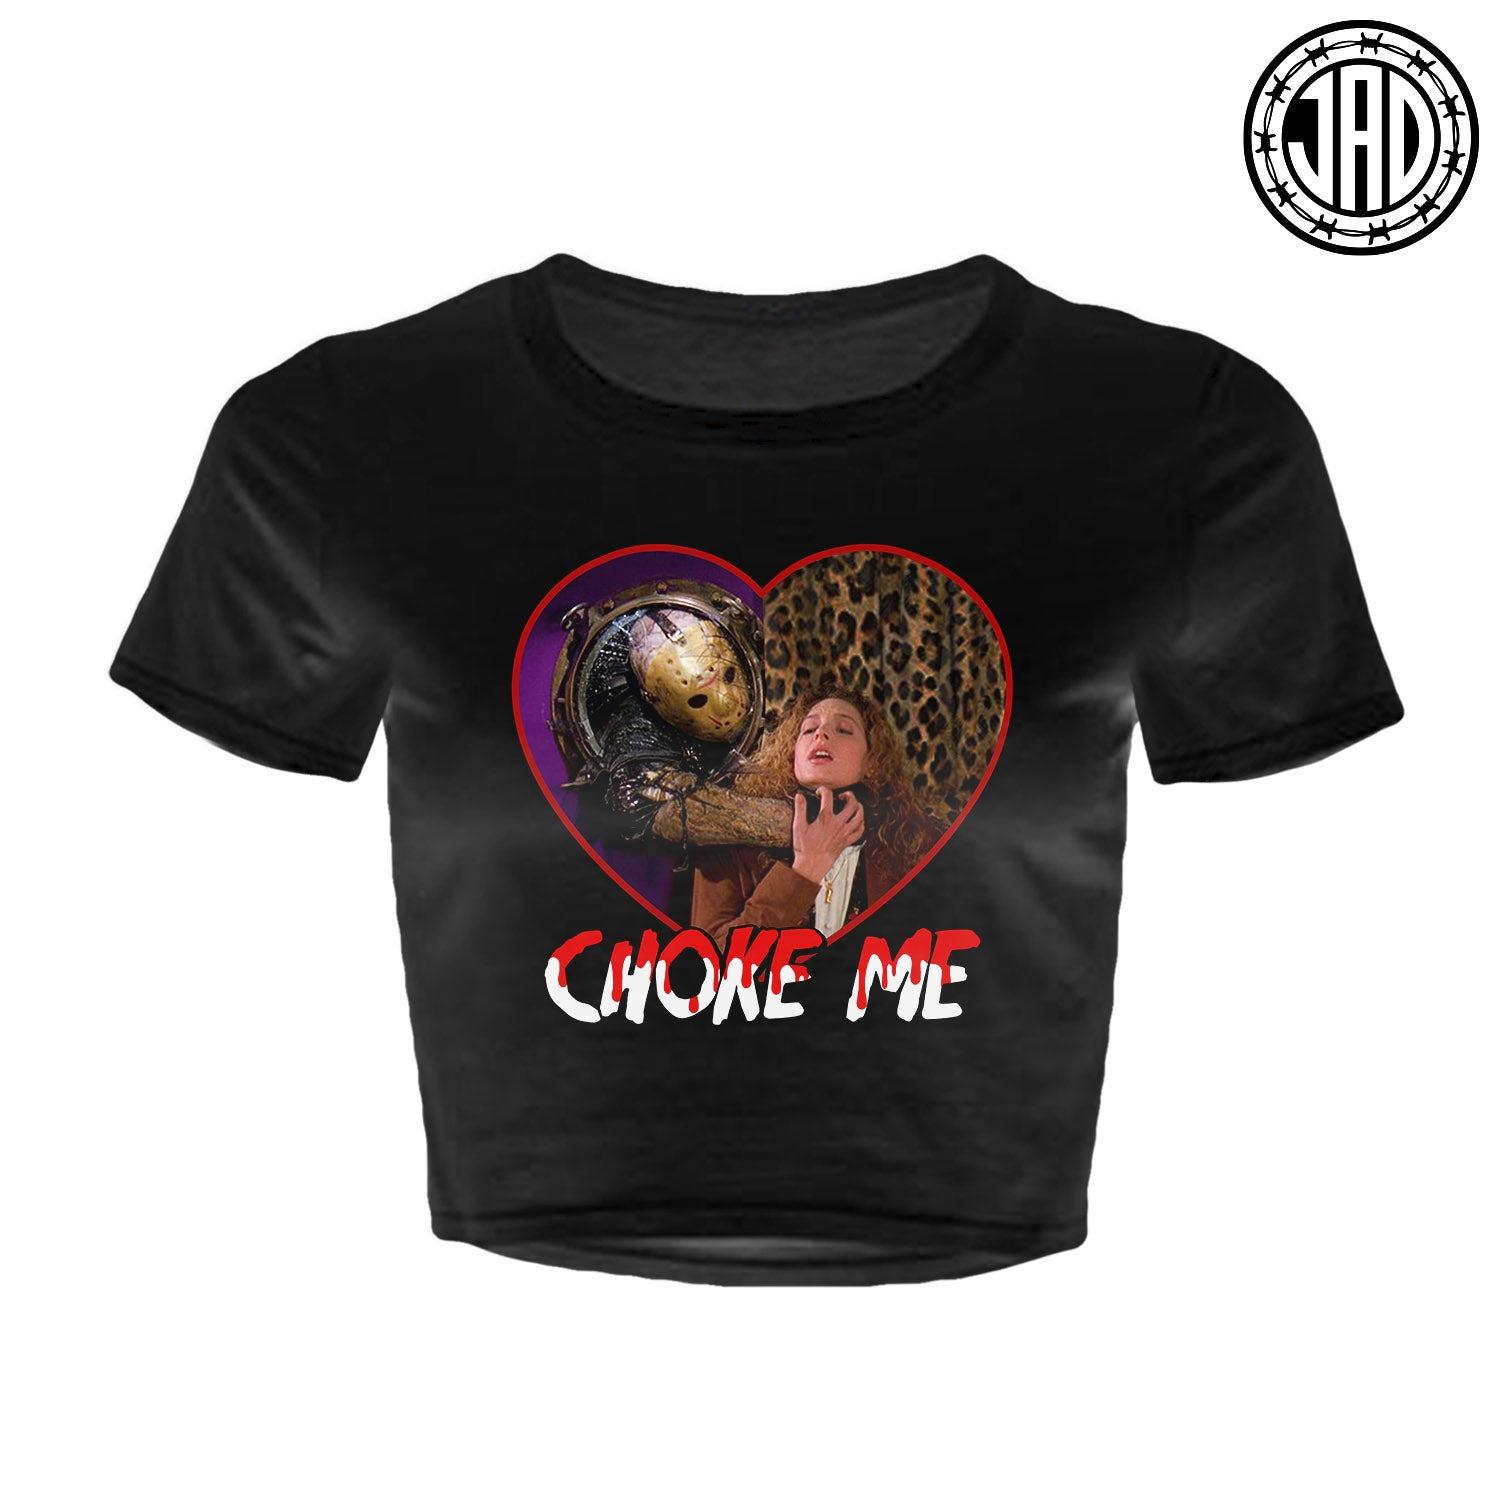 Choke Me - Women's Crop Top